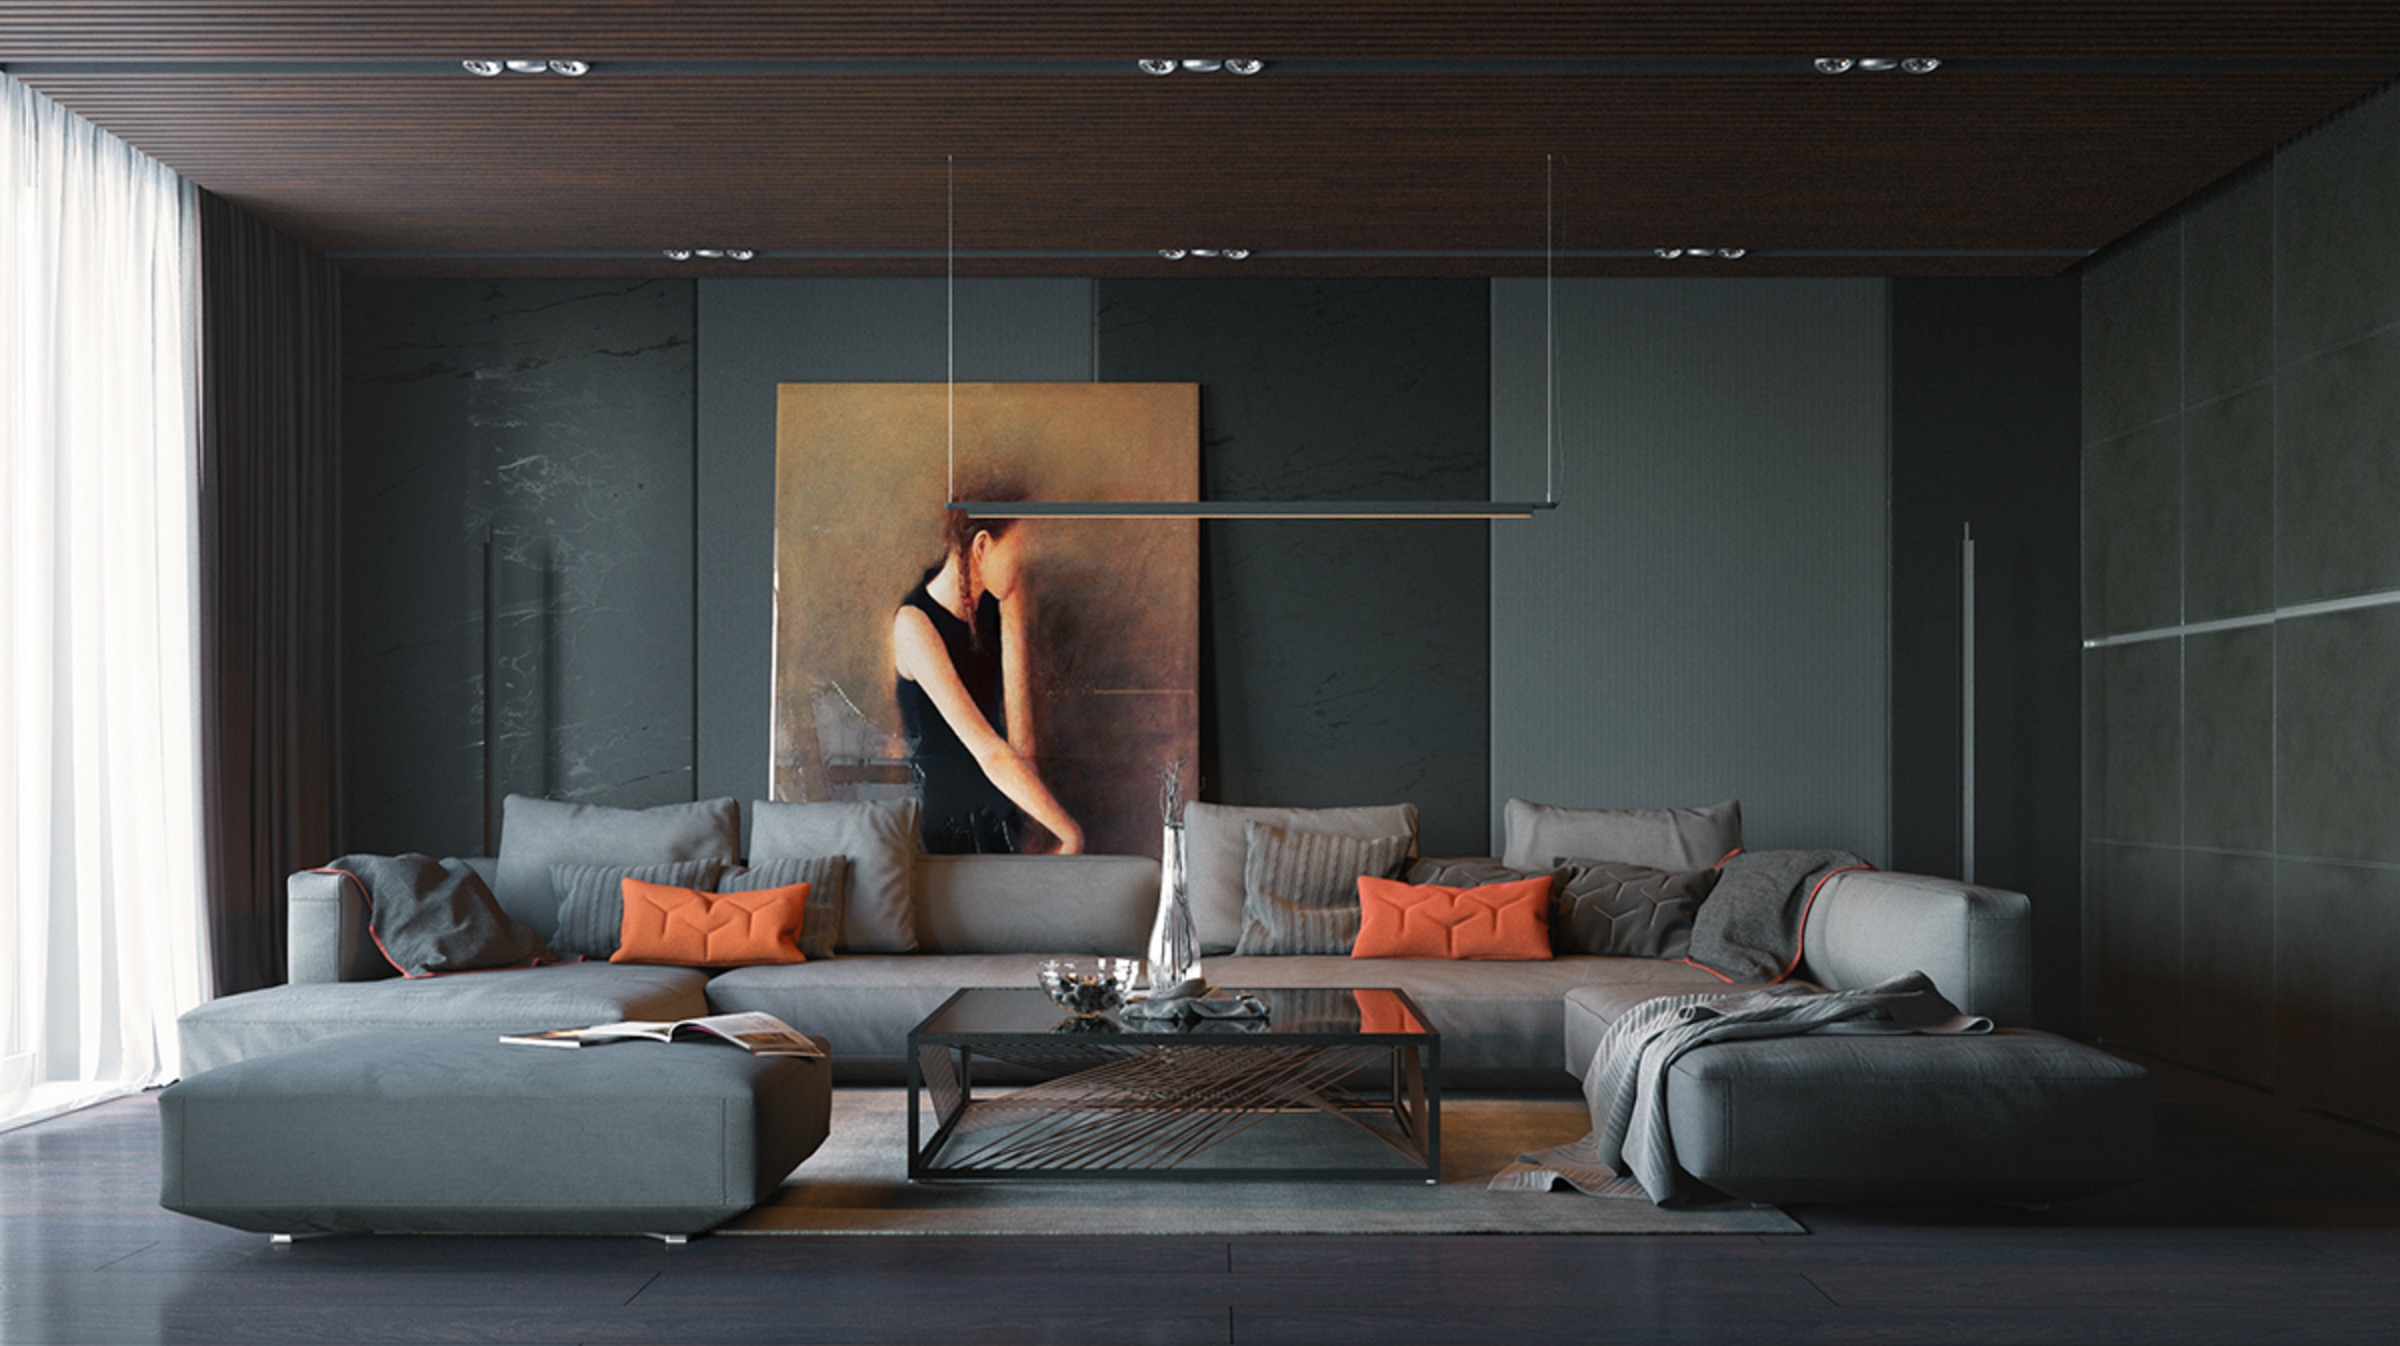 Living Room Interior Design Inspiration living room designs interior design ideas large wall art for rooms inspiration